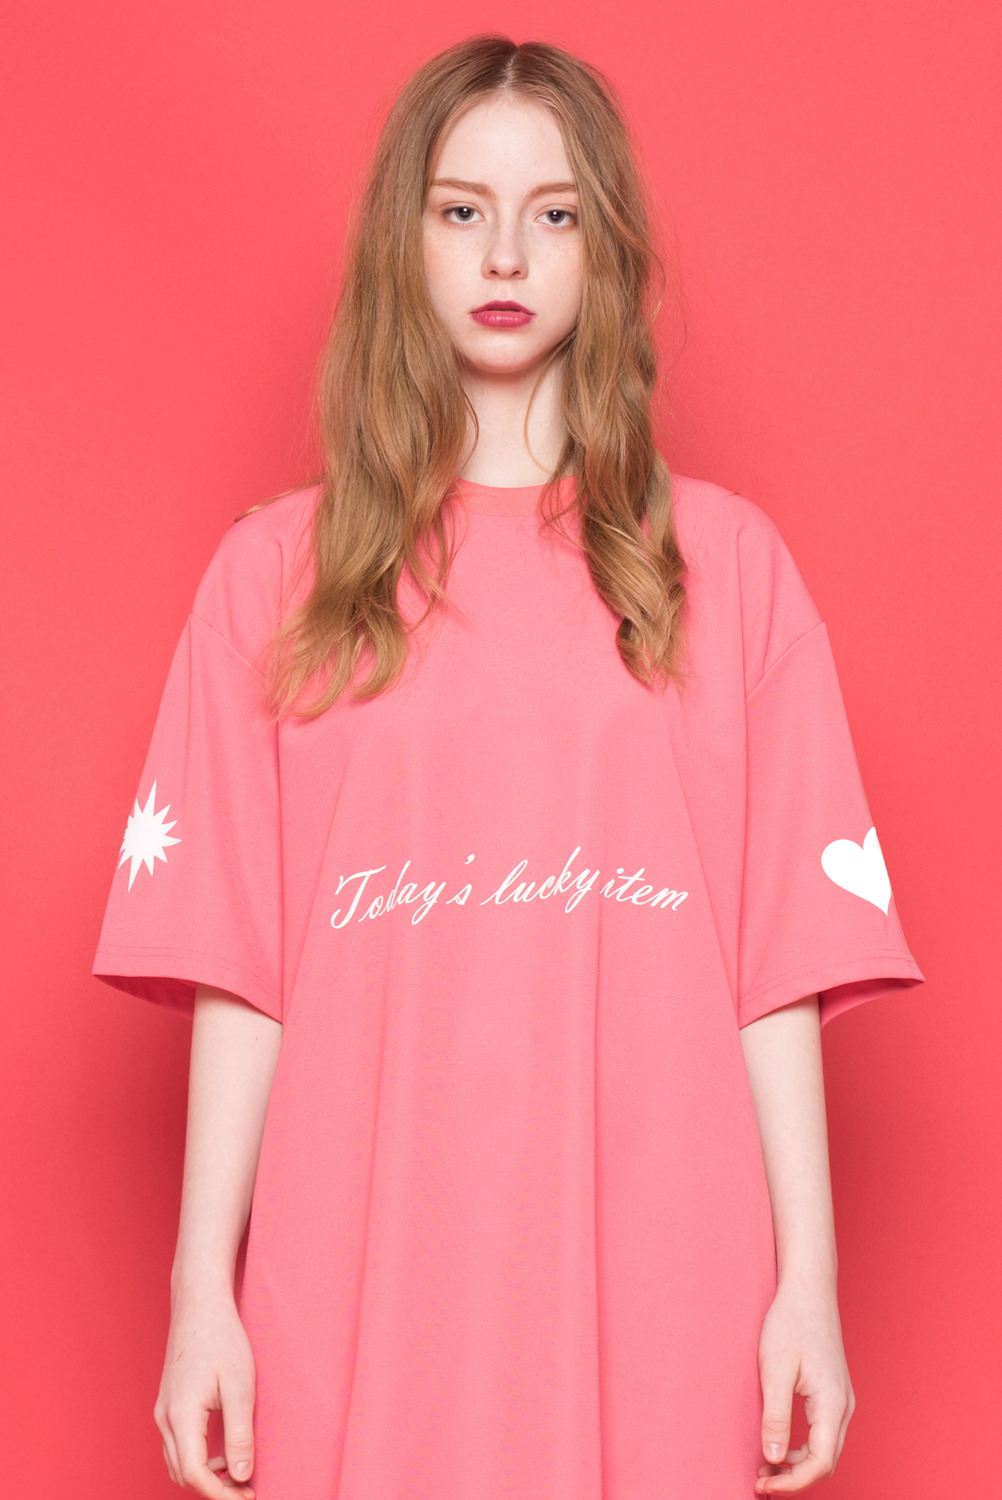 [UNISEX]  Today's lucky item One-piece (Pink)